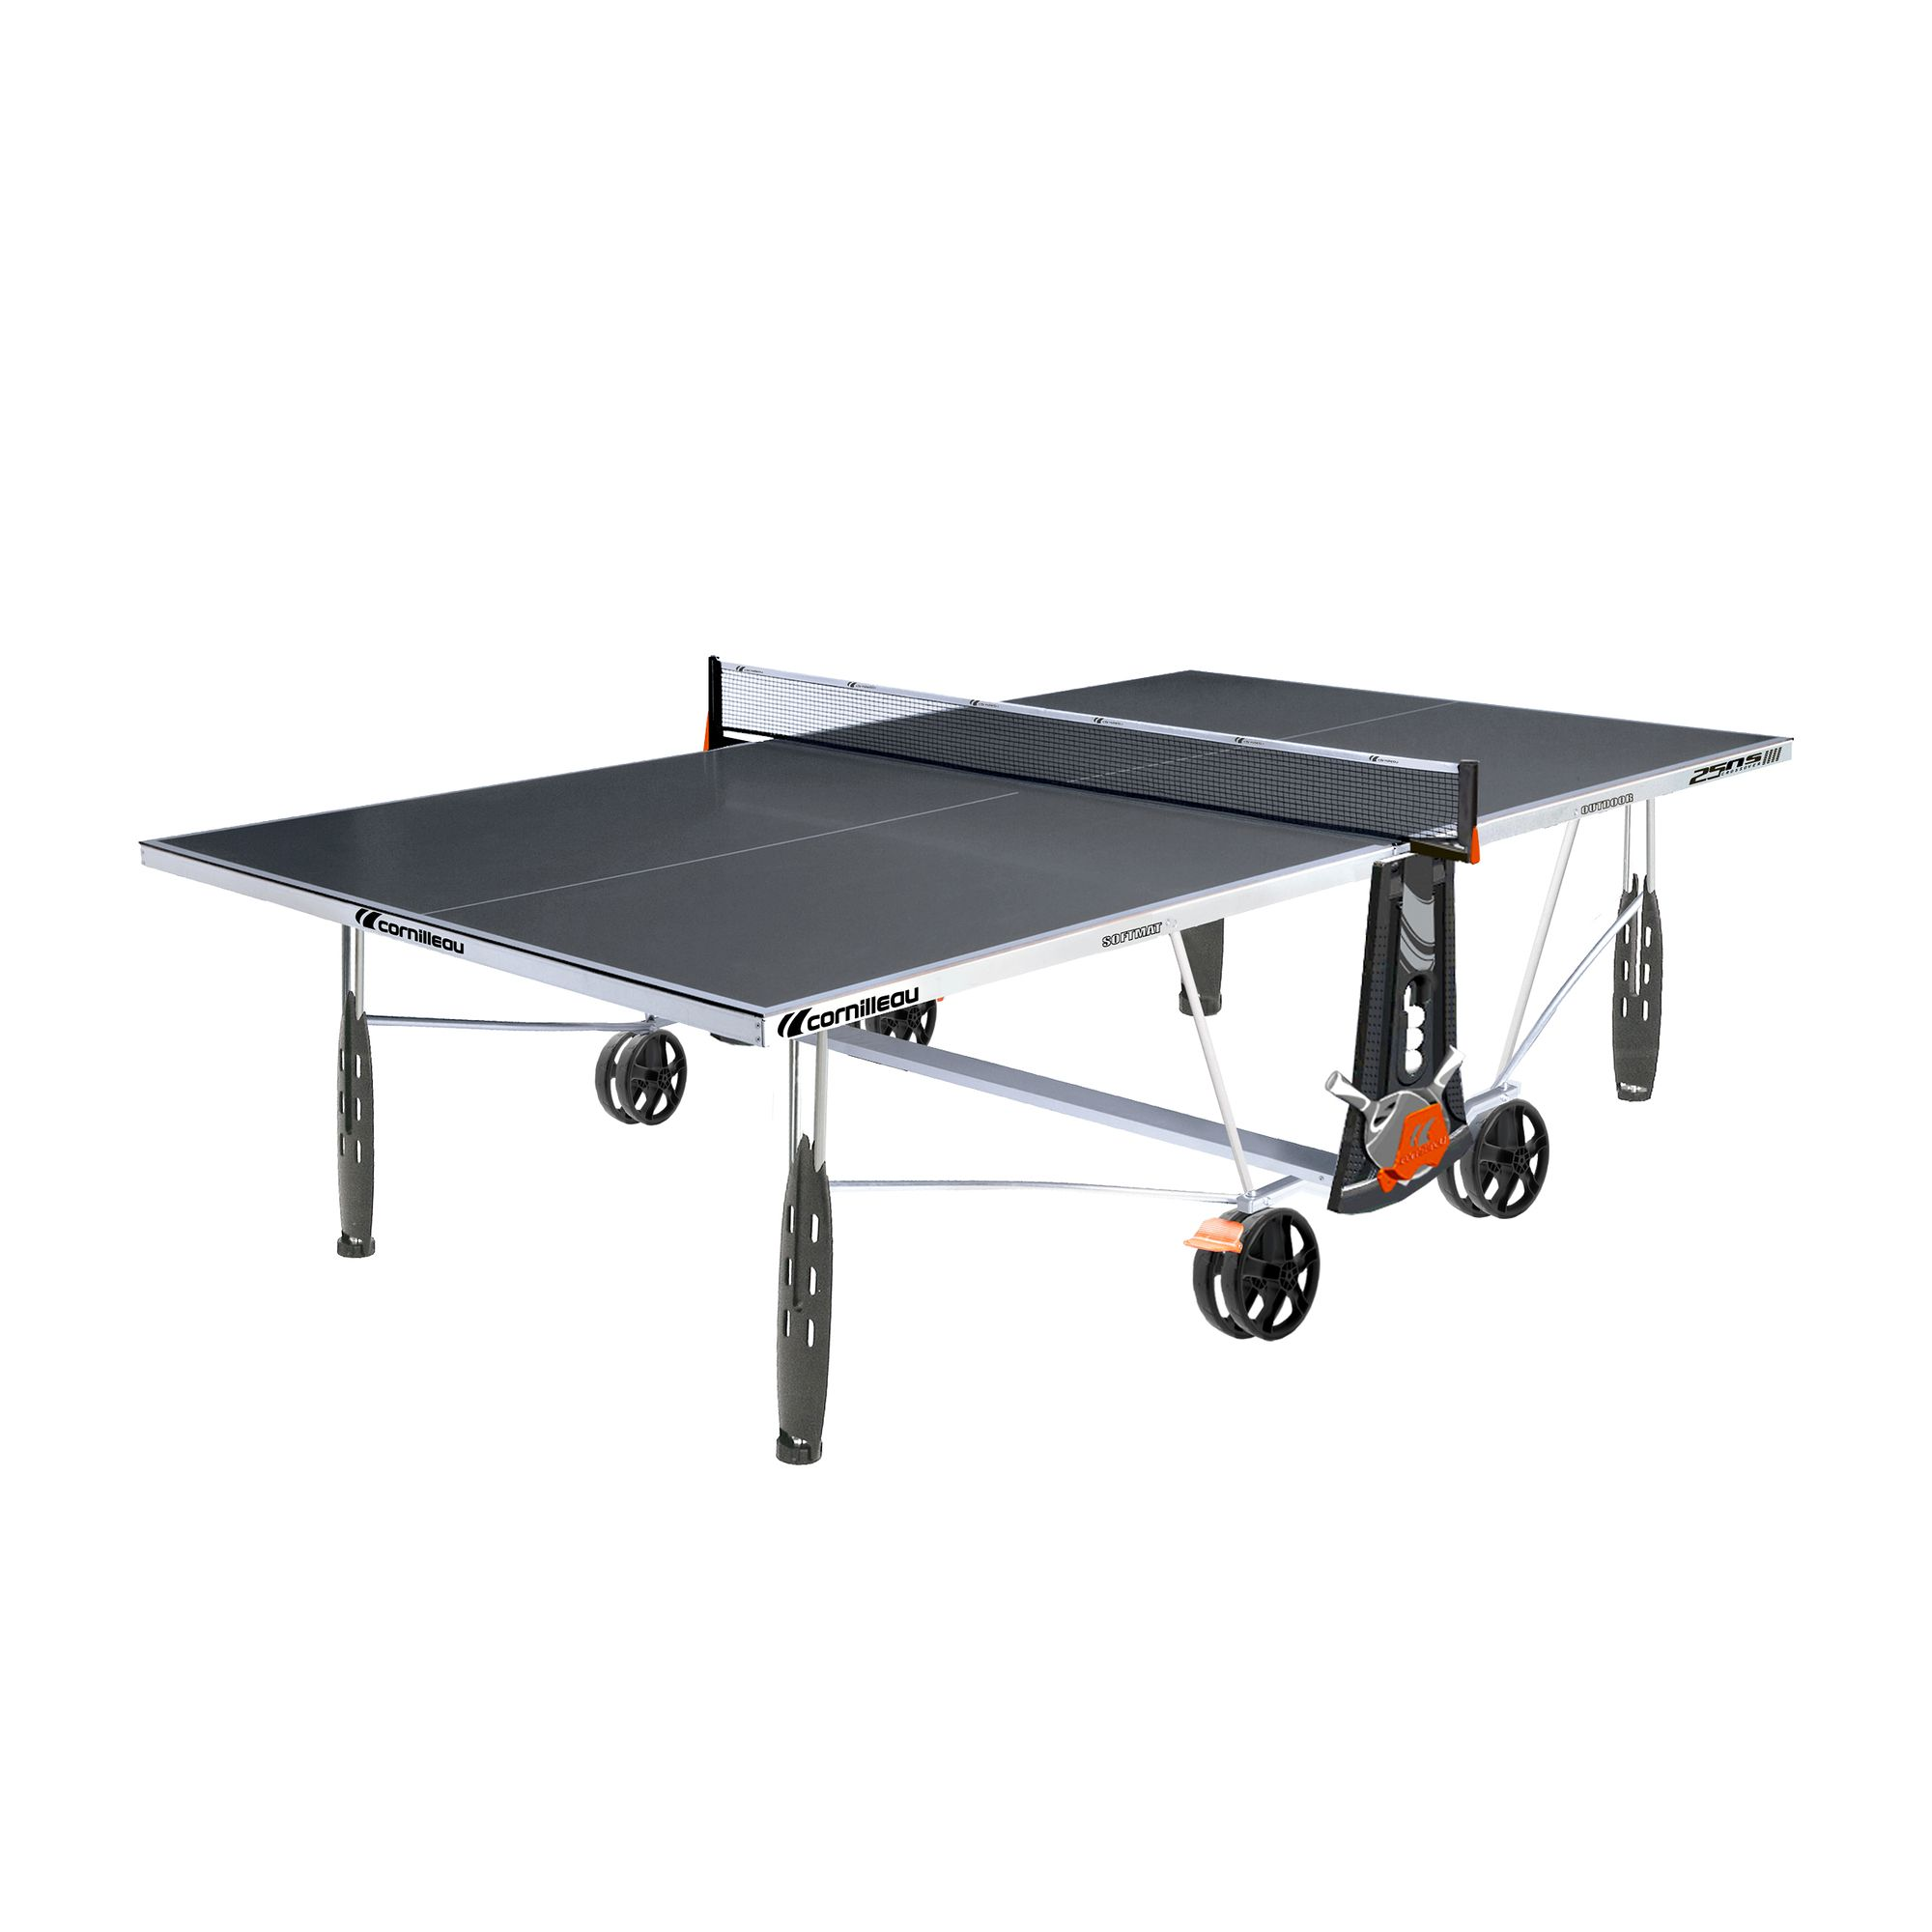 TABLE DE TENNIS DE TABLE FREE CROSSOVER 250S OUTDOOR GRISE